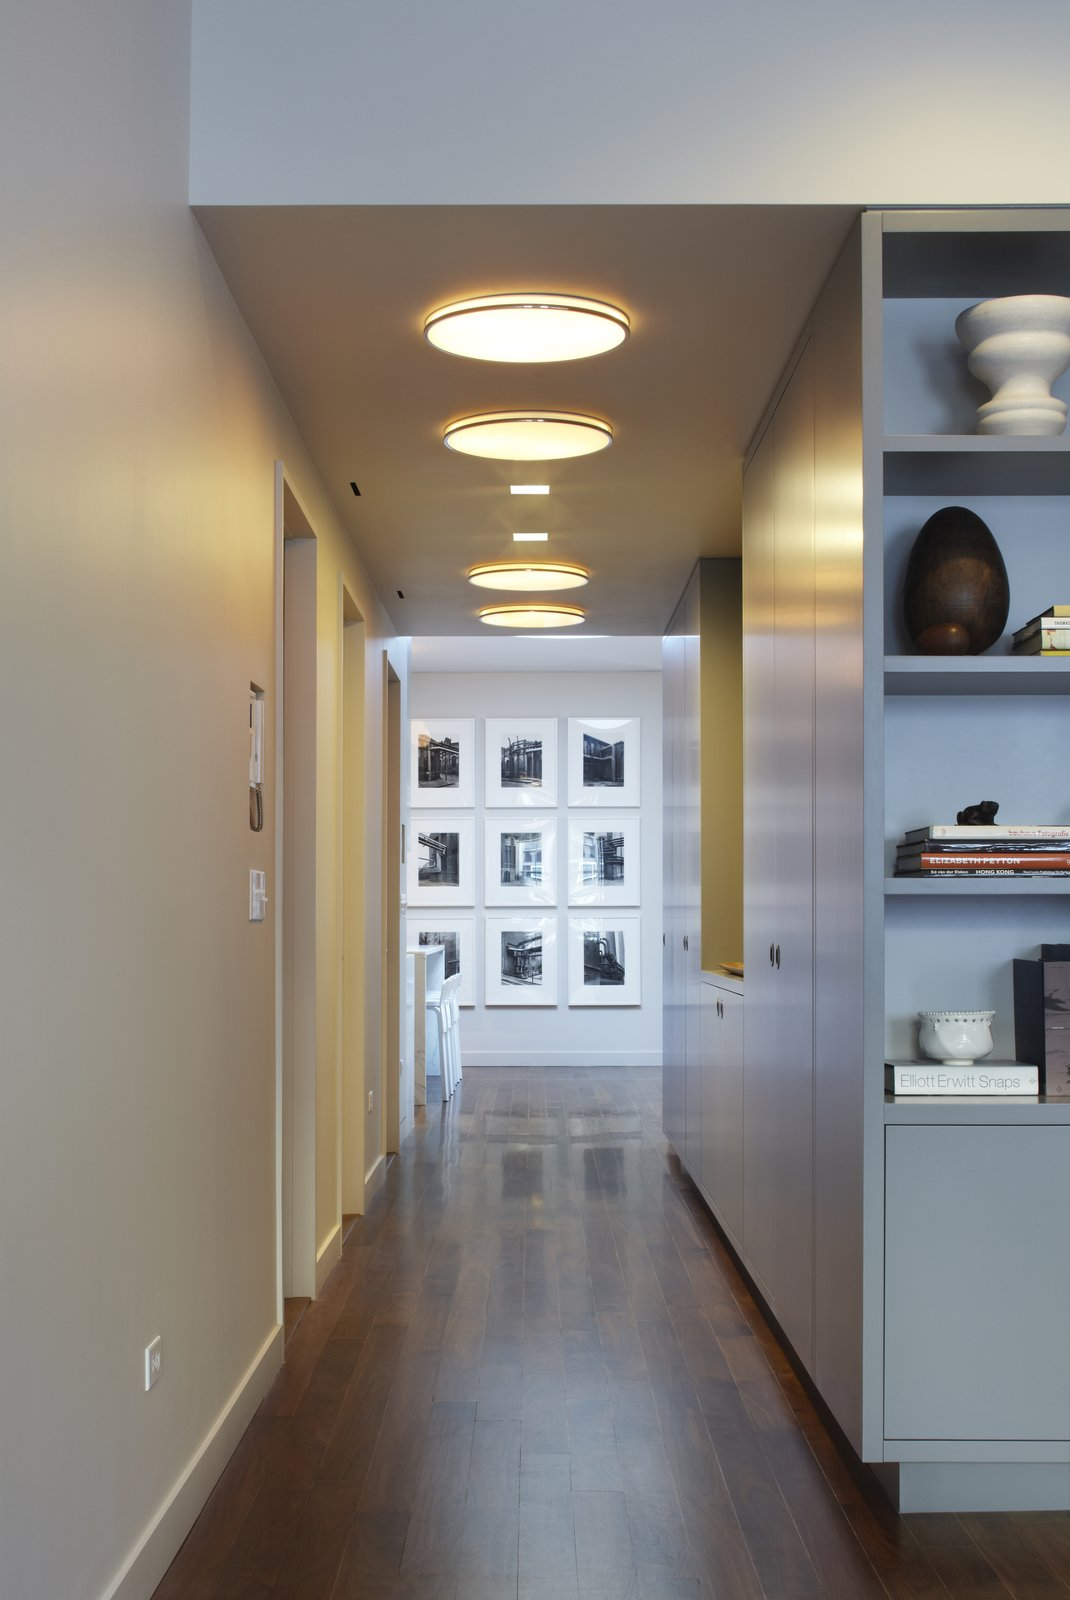 The front hallway links the living room to the kitchen and dining area.  The existing apartment was originally a manufacturing loft space.  NYC lofts being long and narrow with windows typically only at the front and rear façades can be somewhat dark.  With this in mind we designed the apartment to have light filled spaces via rooftop skylights.  Here a photo series by Bernd and Hilla Becher are washed with natural light from a large drum skylight not yet visible from this perspective.  The hallway ceiling echoes the drum skylight with Munkegaard fixtures, one of our favorites from Louis Poulsen.